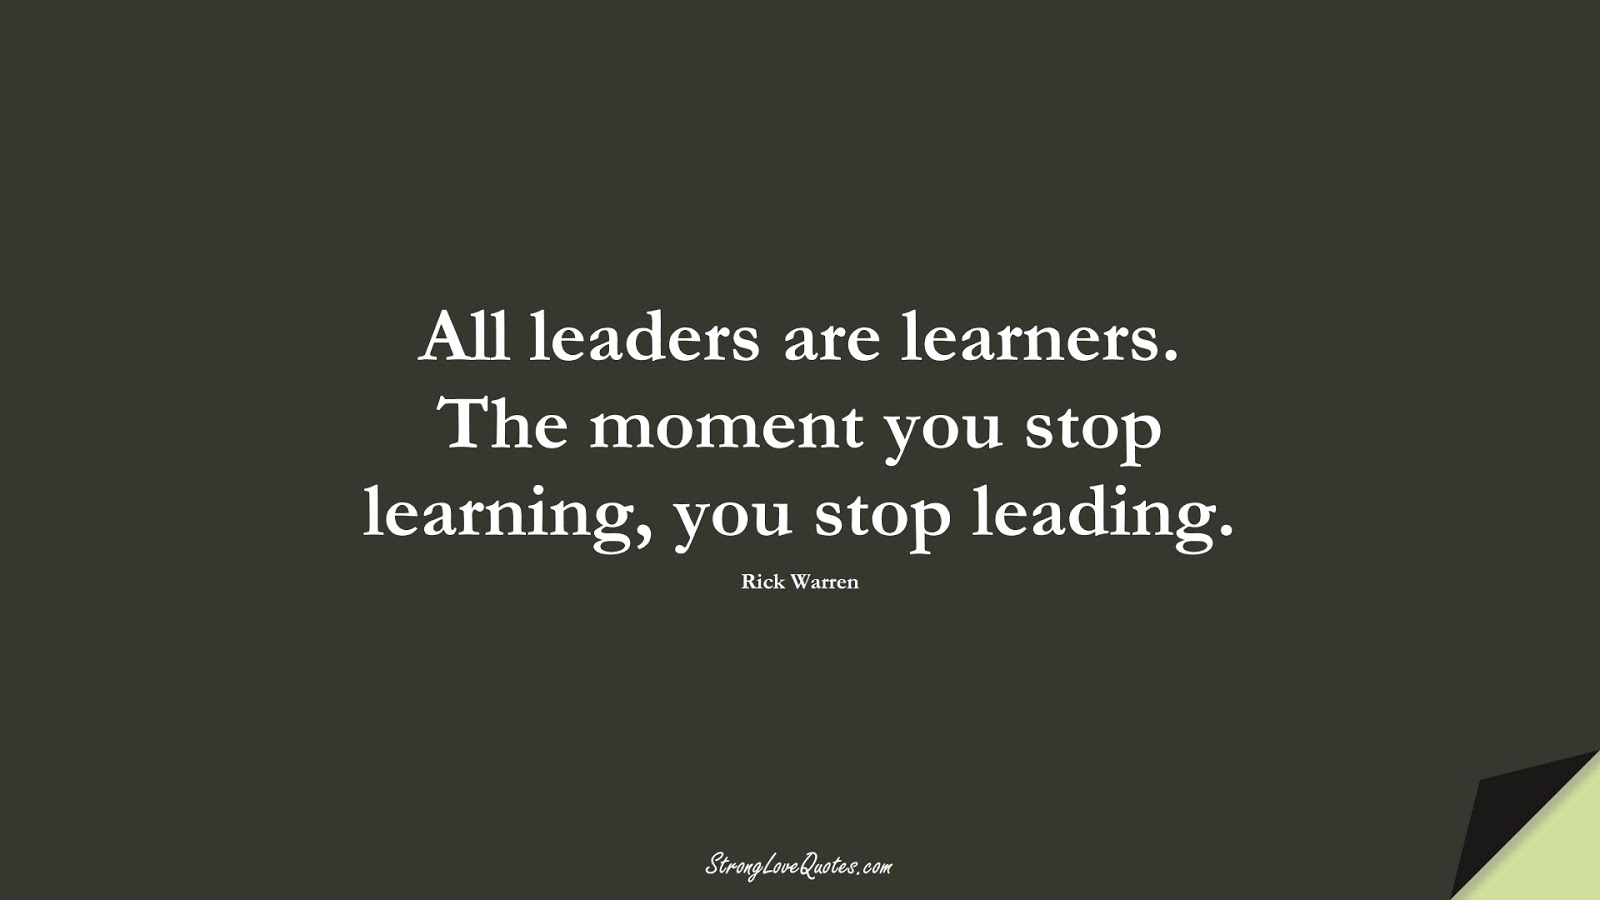 All leaders are learners. The moment you stop learning, you stop leading. (Rick Warren);  #LearningQuotes